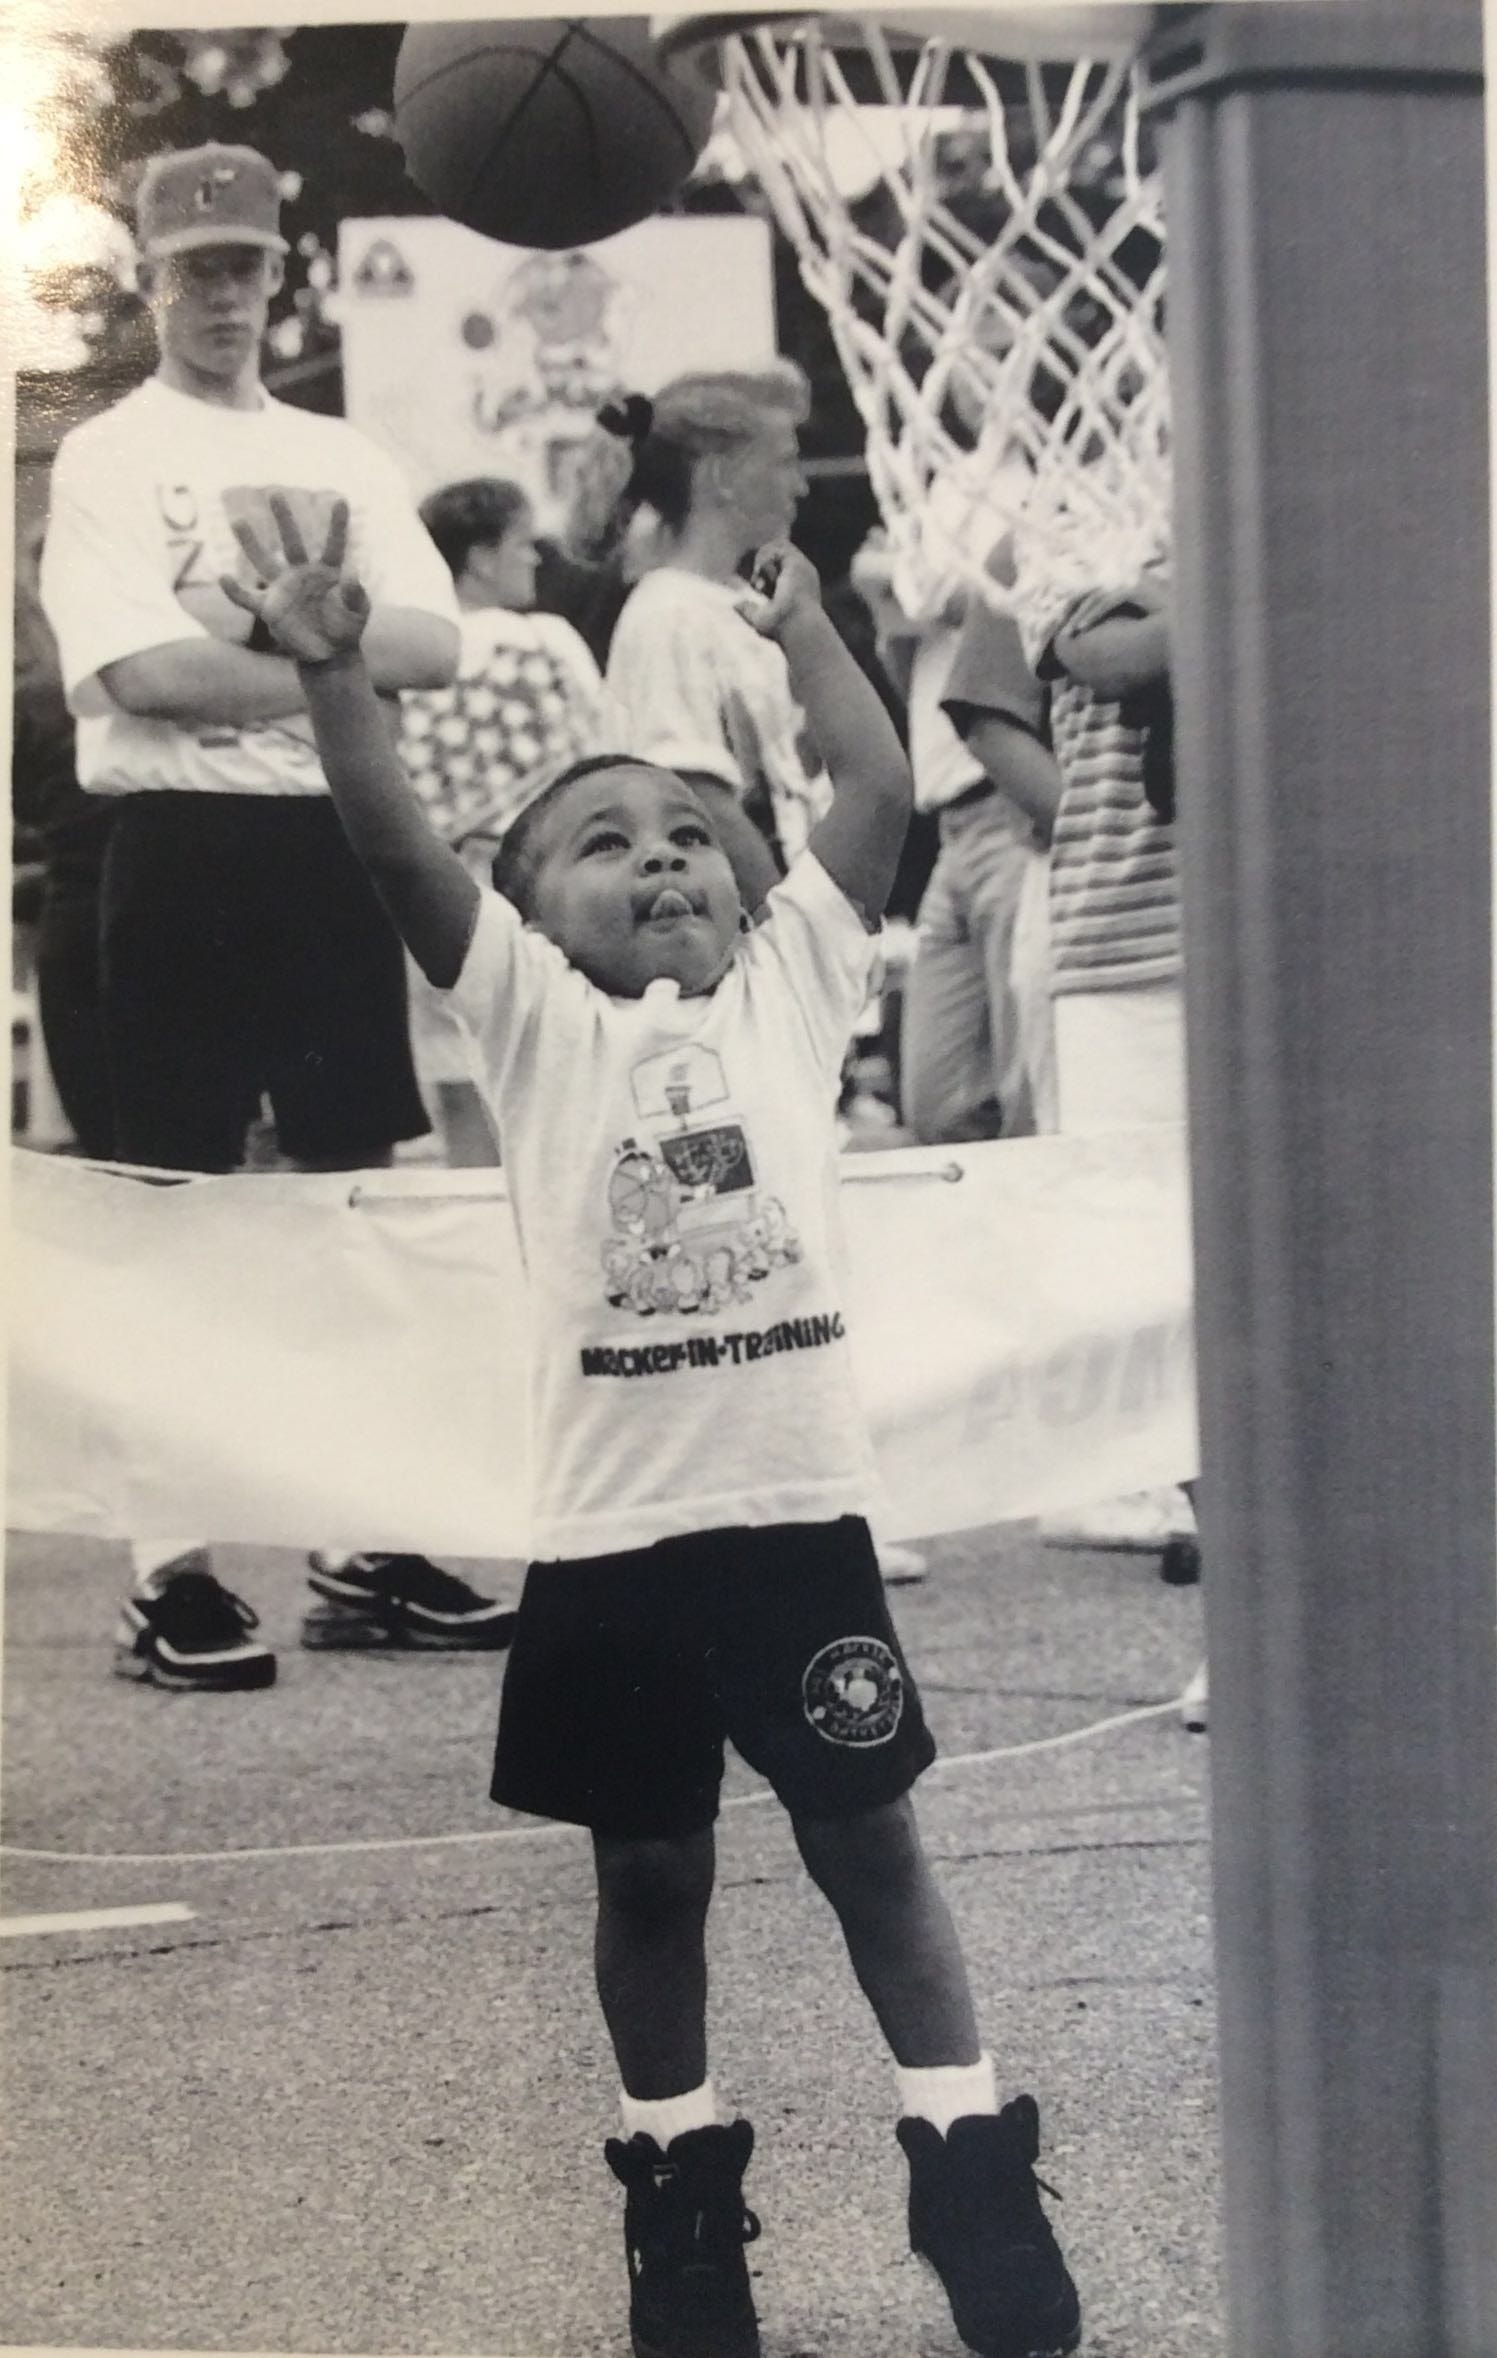 People of all ages have participated in Gus Macker basketball tournaments since they started in 1974 in Lowell, Michigan.